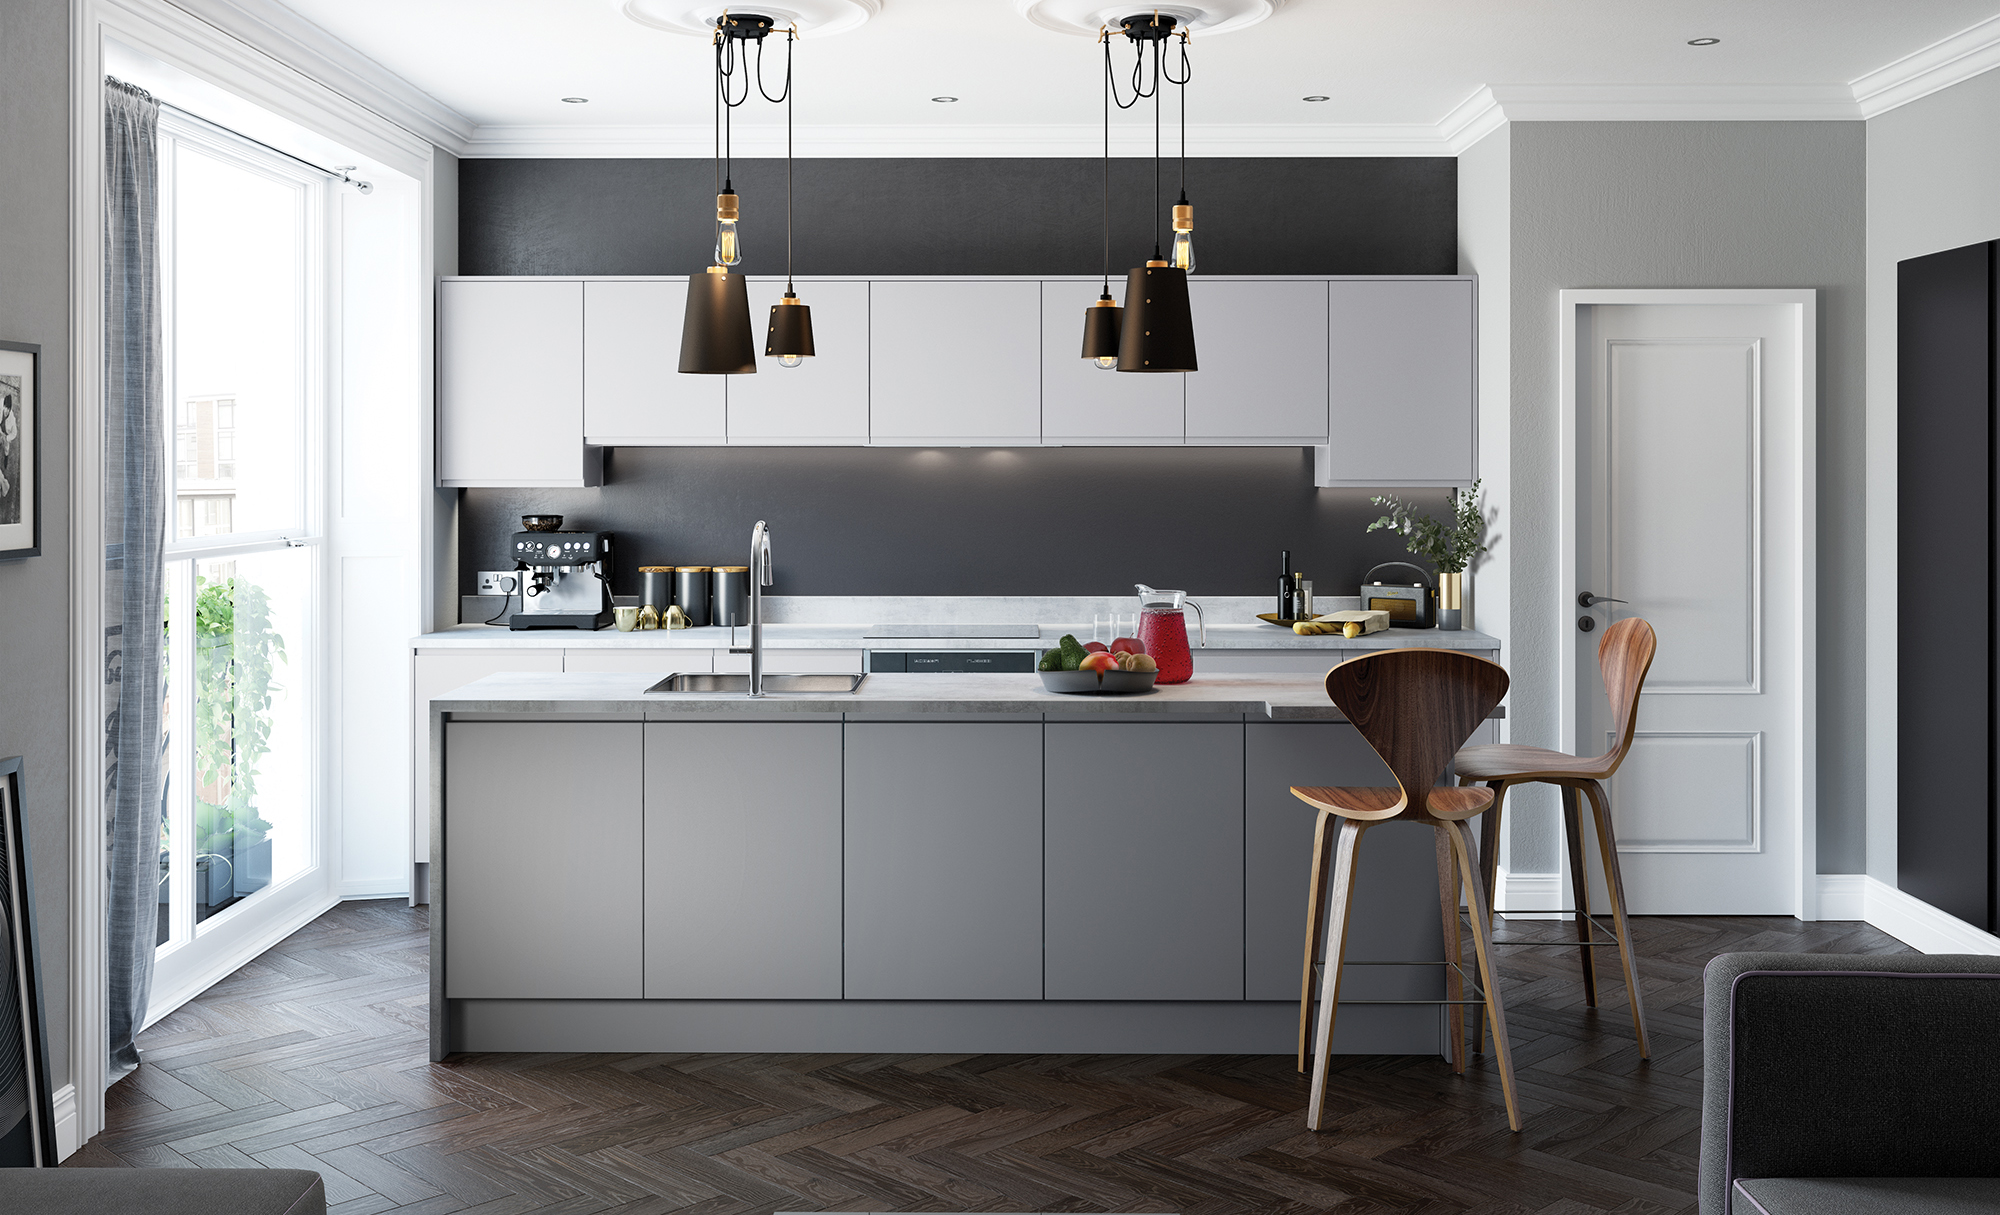 Handless Kitchen Doors Strada Matte Uform - Matt grey kitchen doors